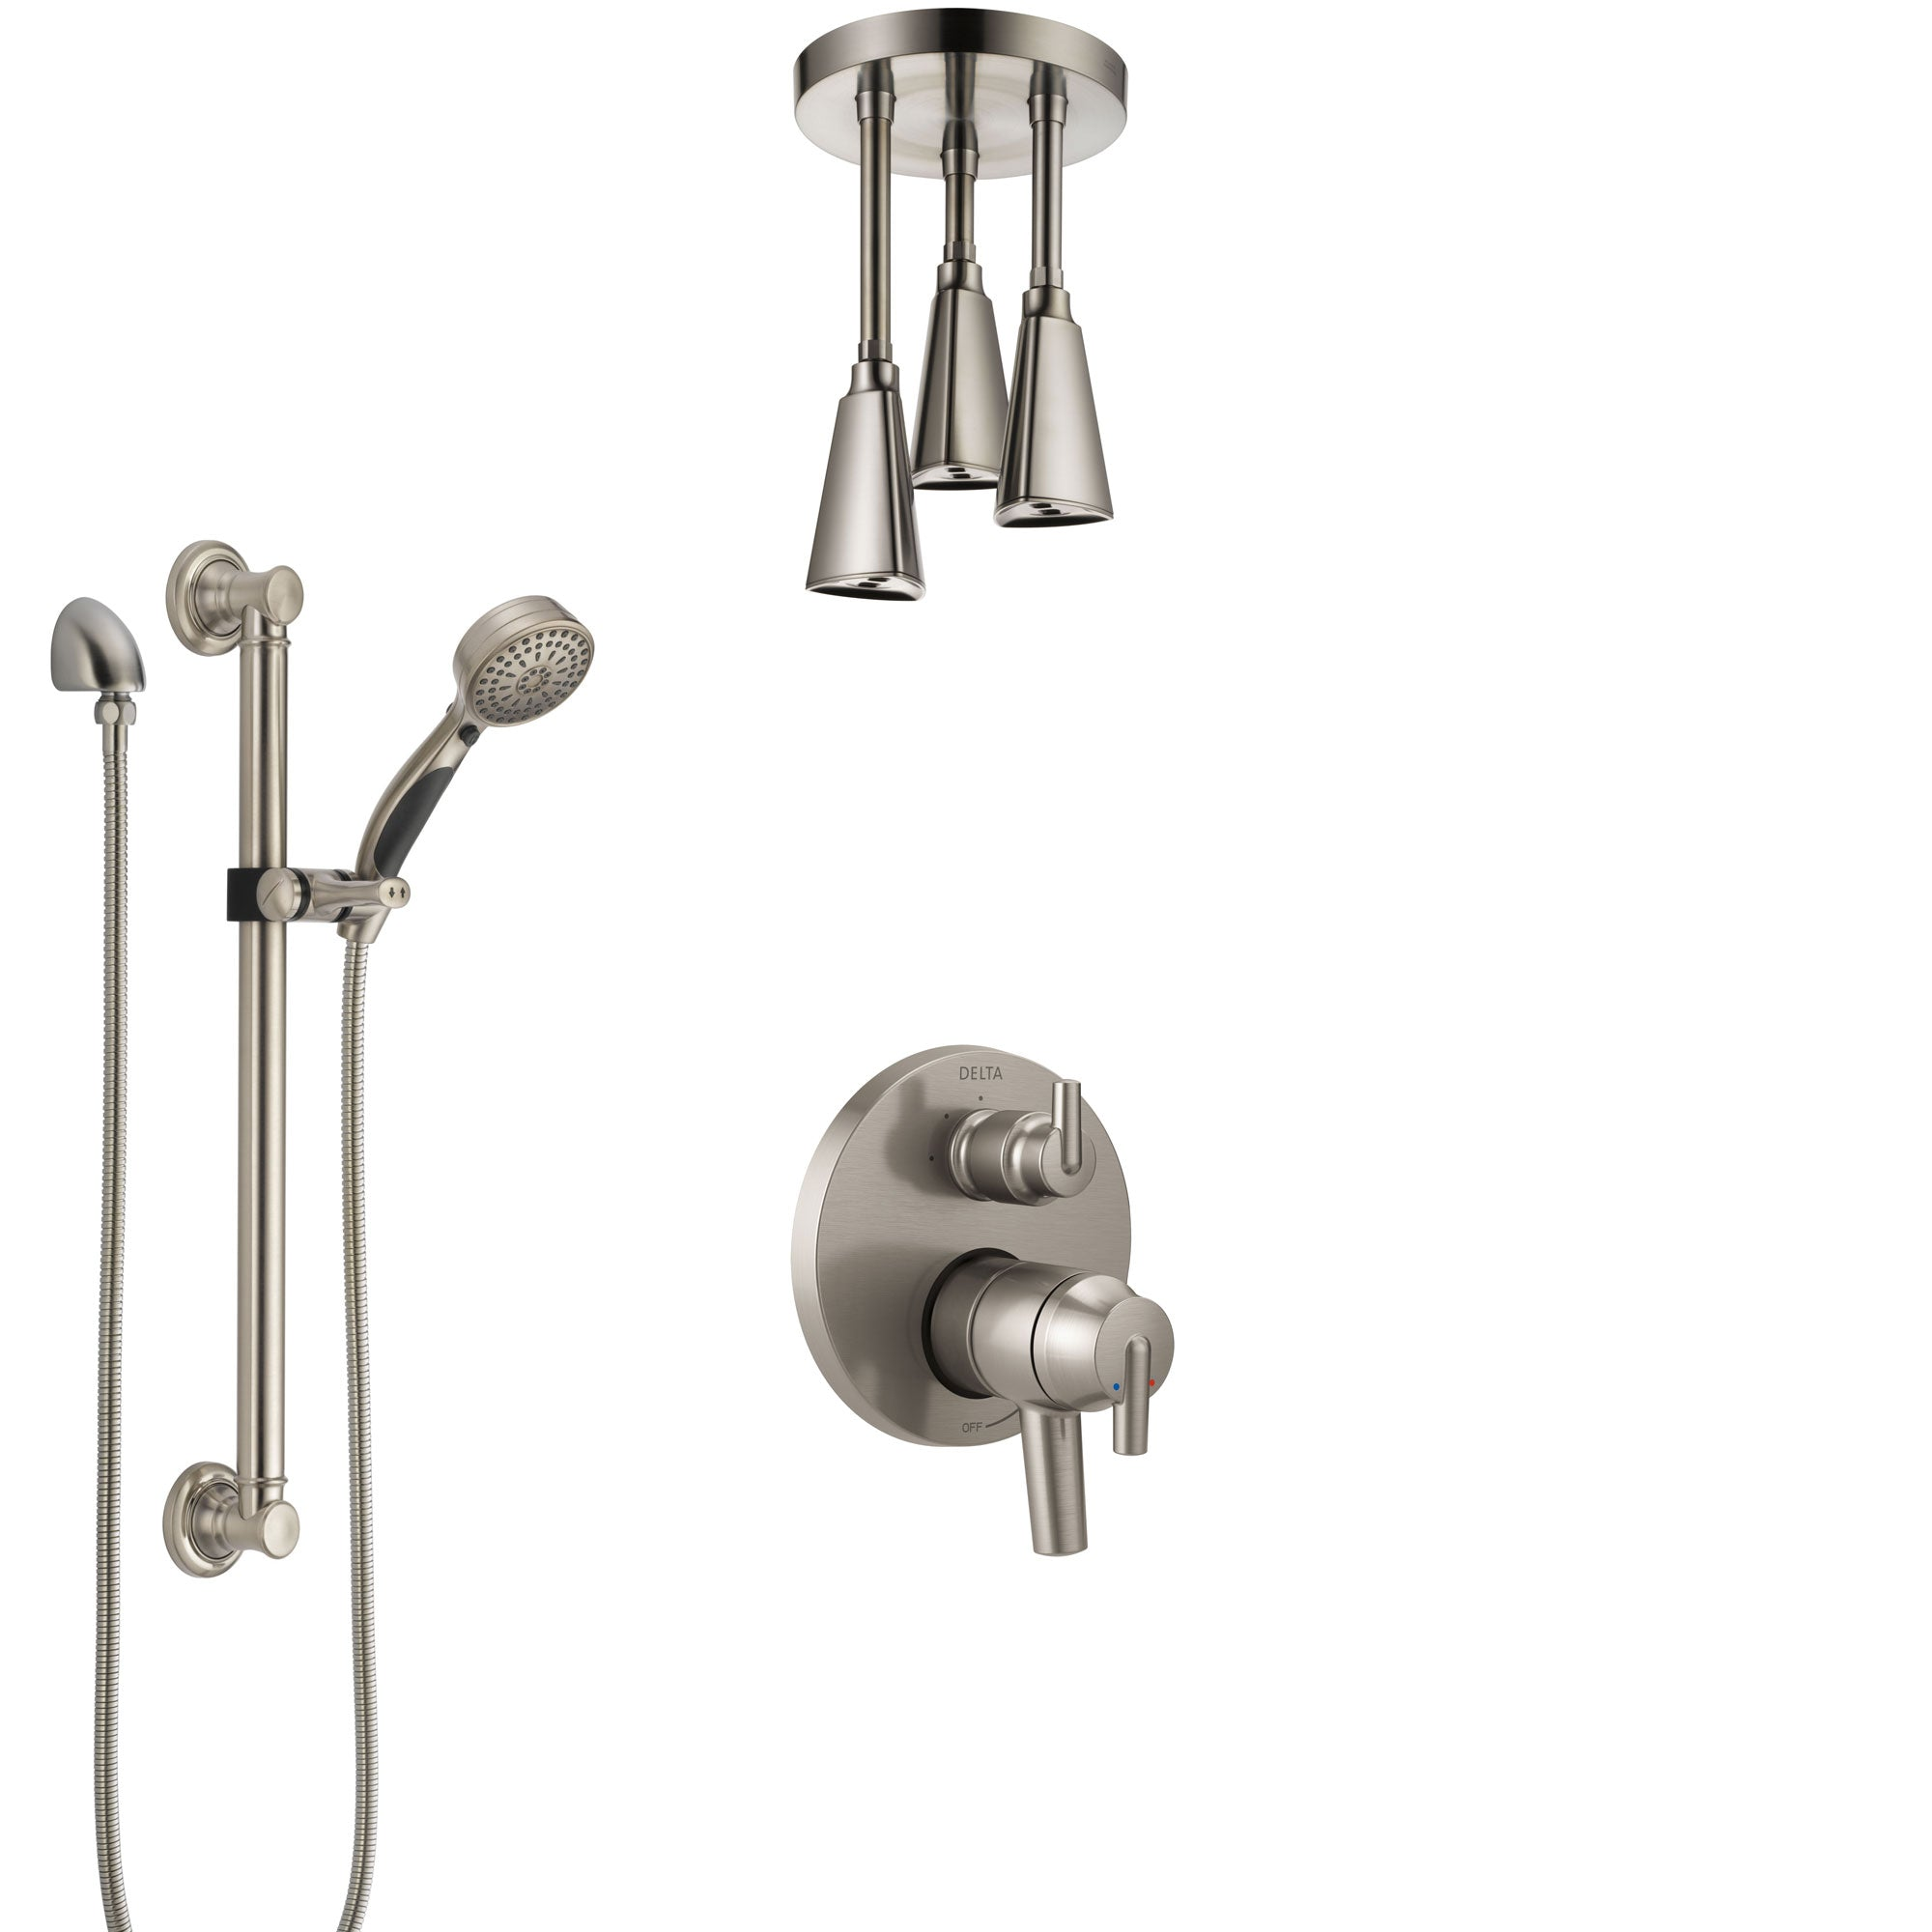 Delta Trinsic Dual Control Handle Stainless Steel Finish Integrated Diverter Shower System, Ceiling Showerhead, and Grab Bar Hand Shower SS27859SS1